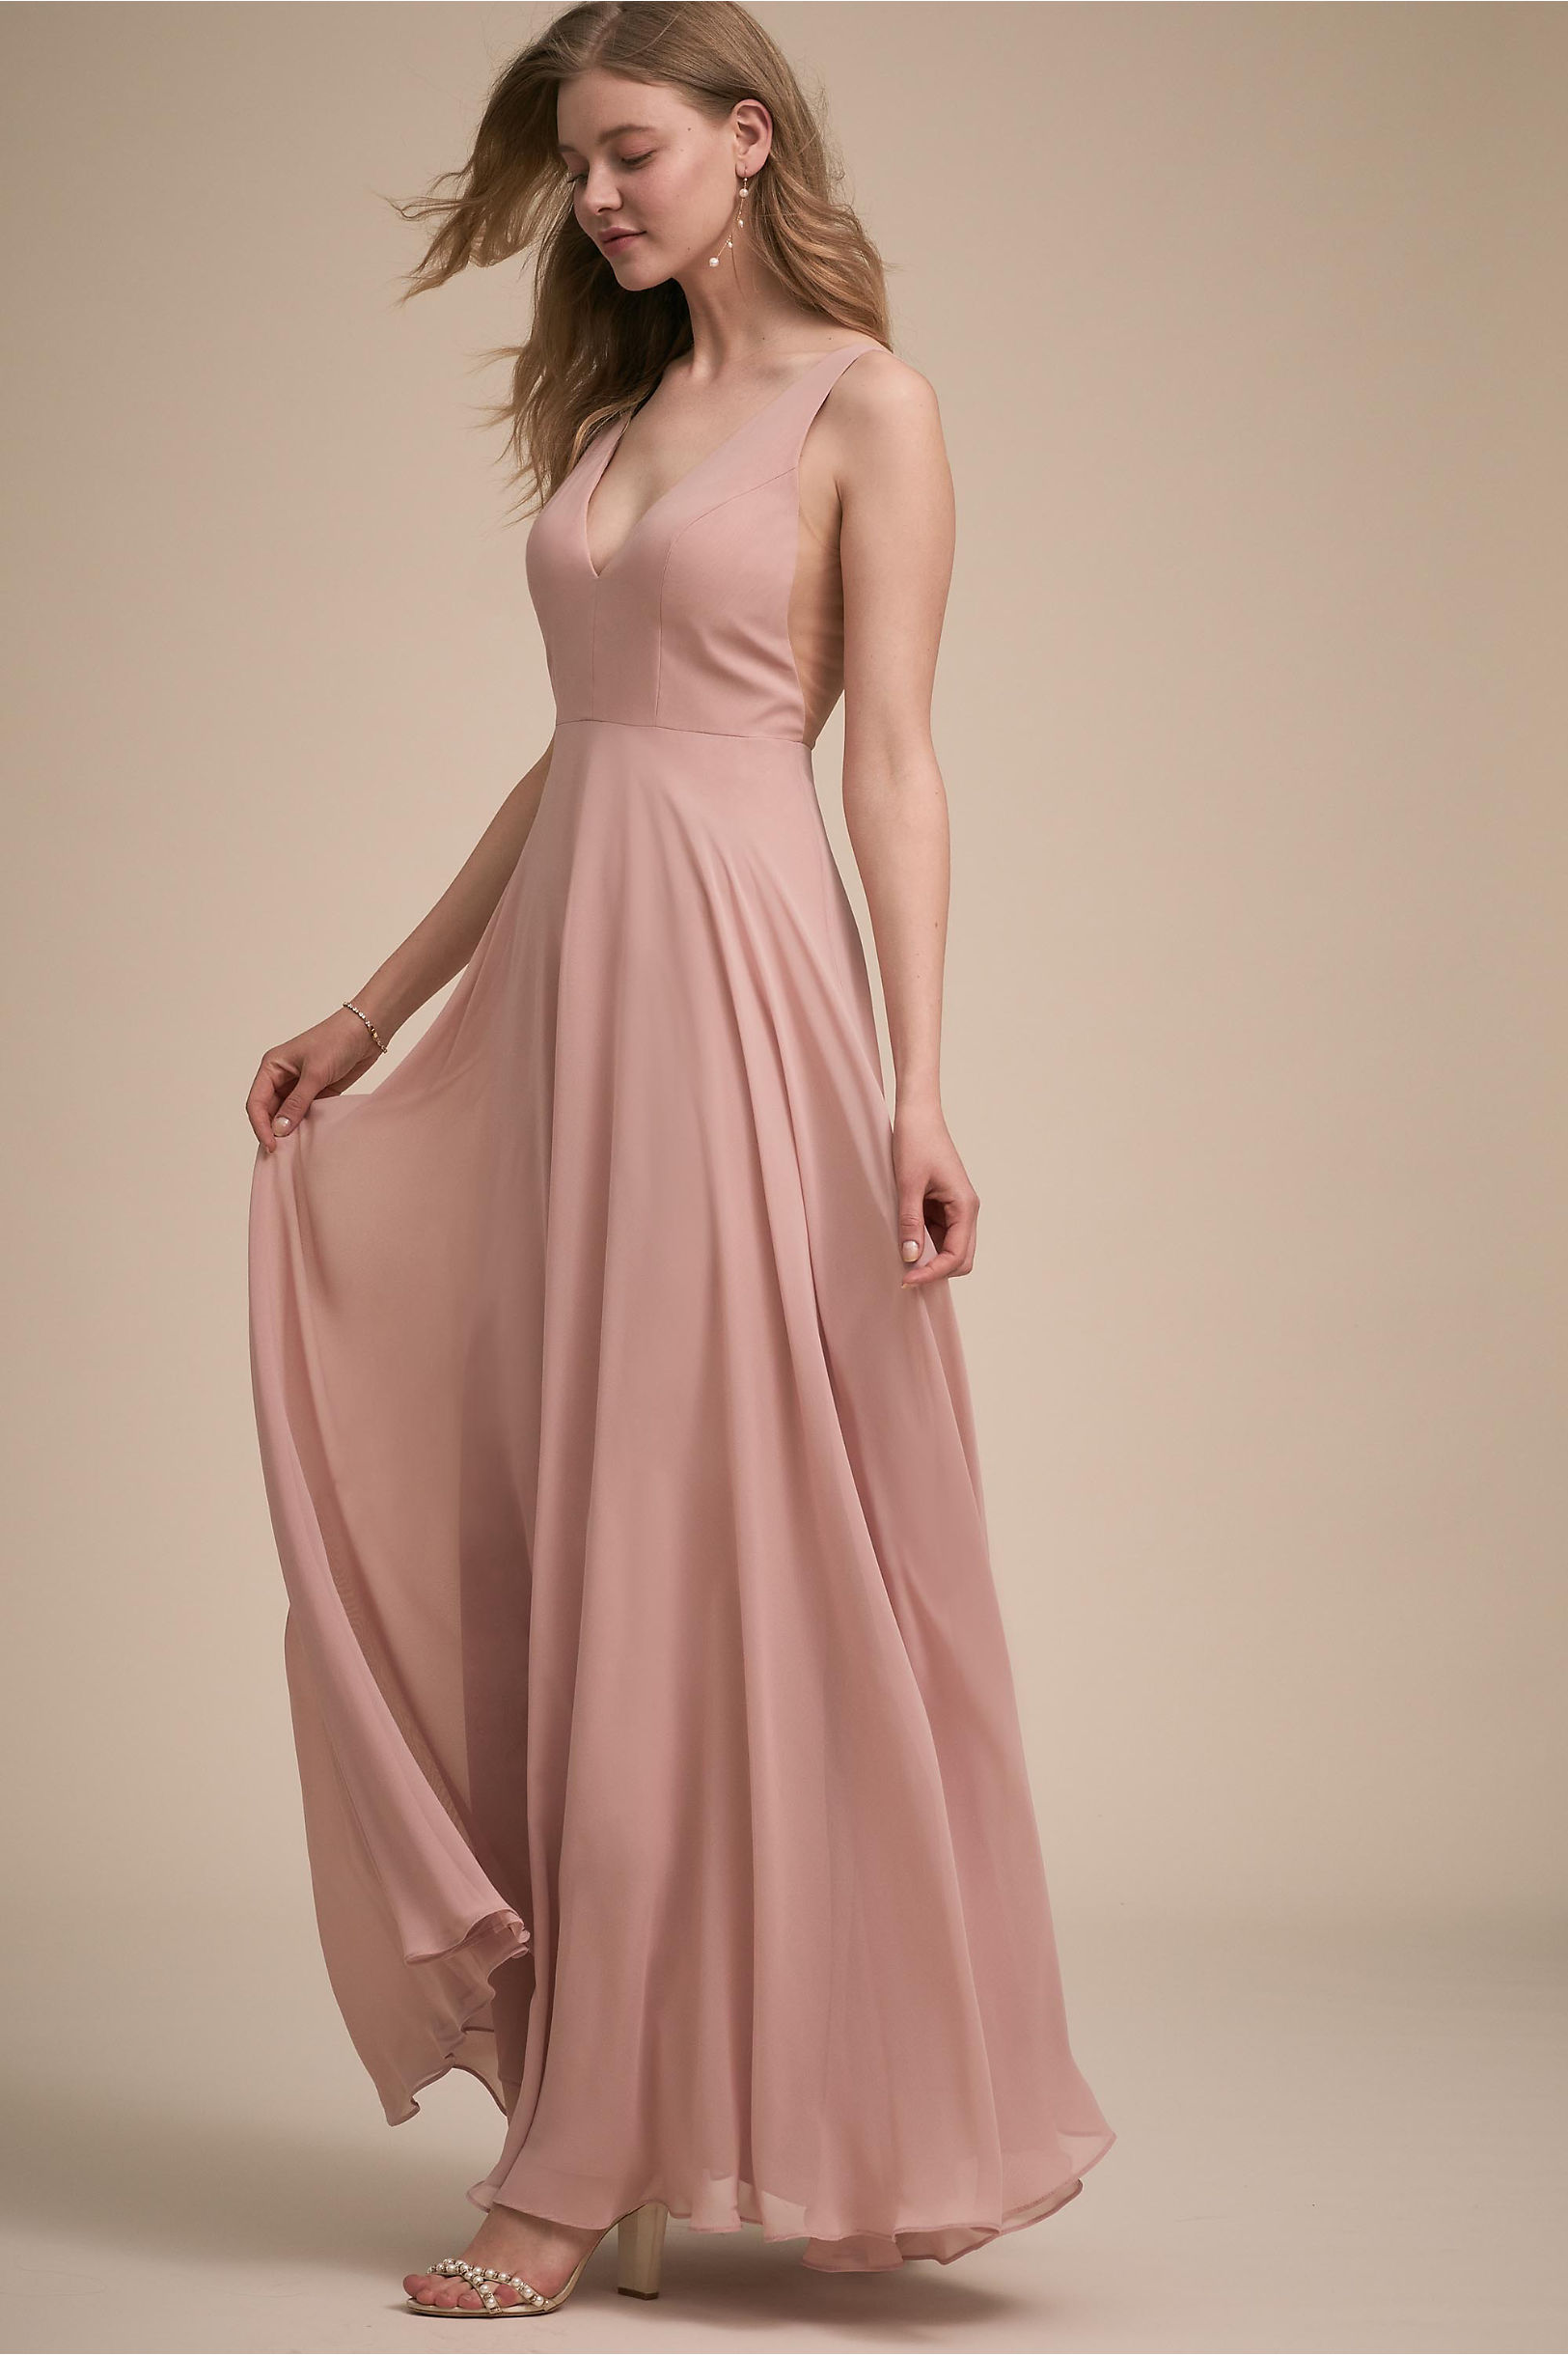 Colby Dress Whipped Apricot in Bridesmaids & Bridal Party | BHLDN